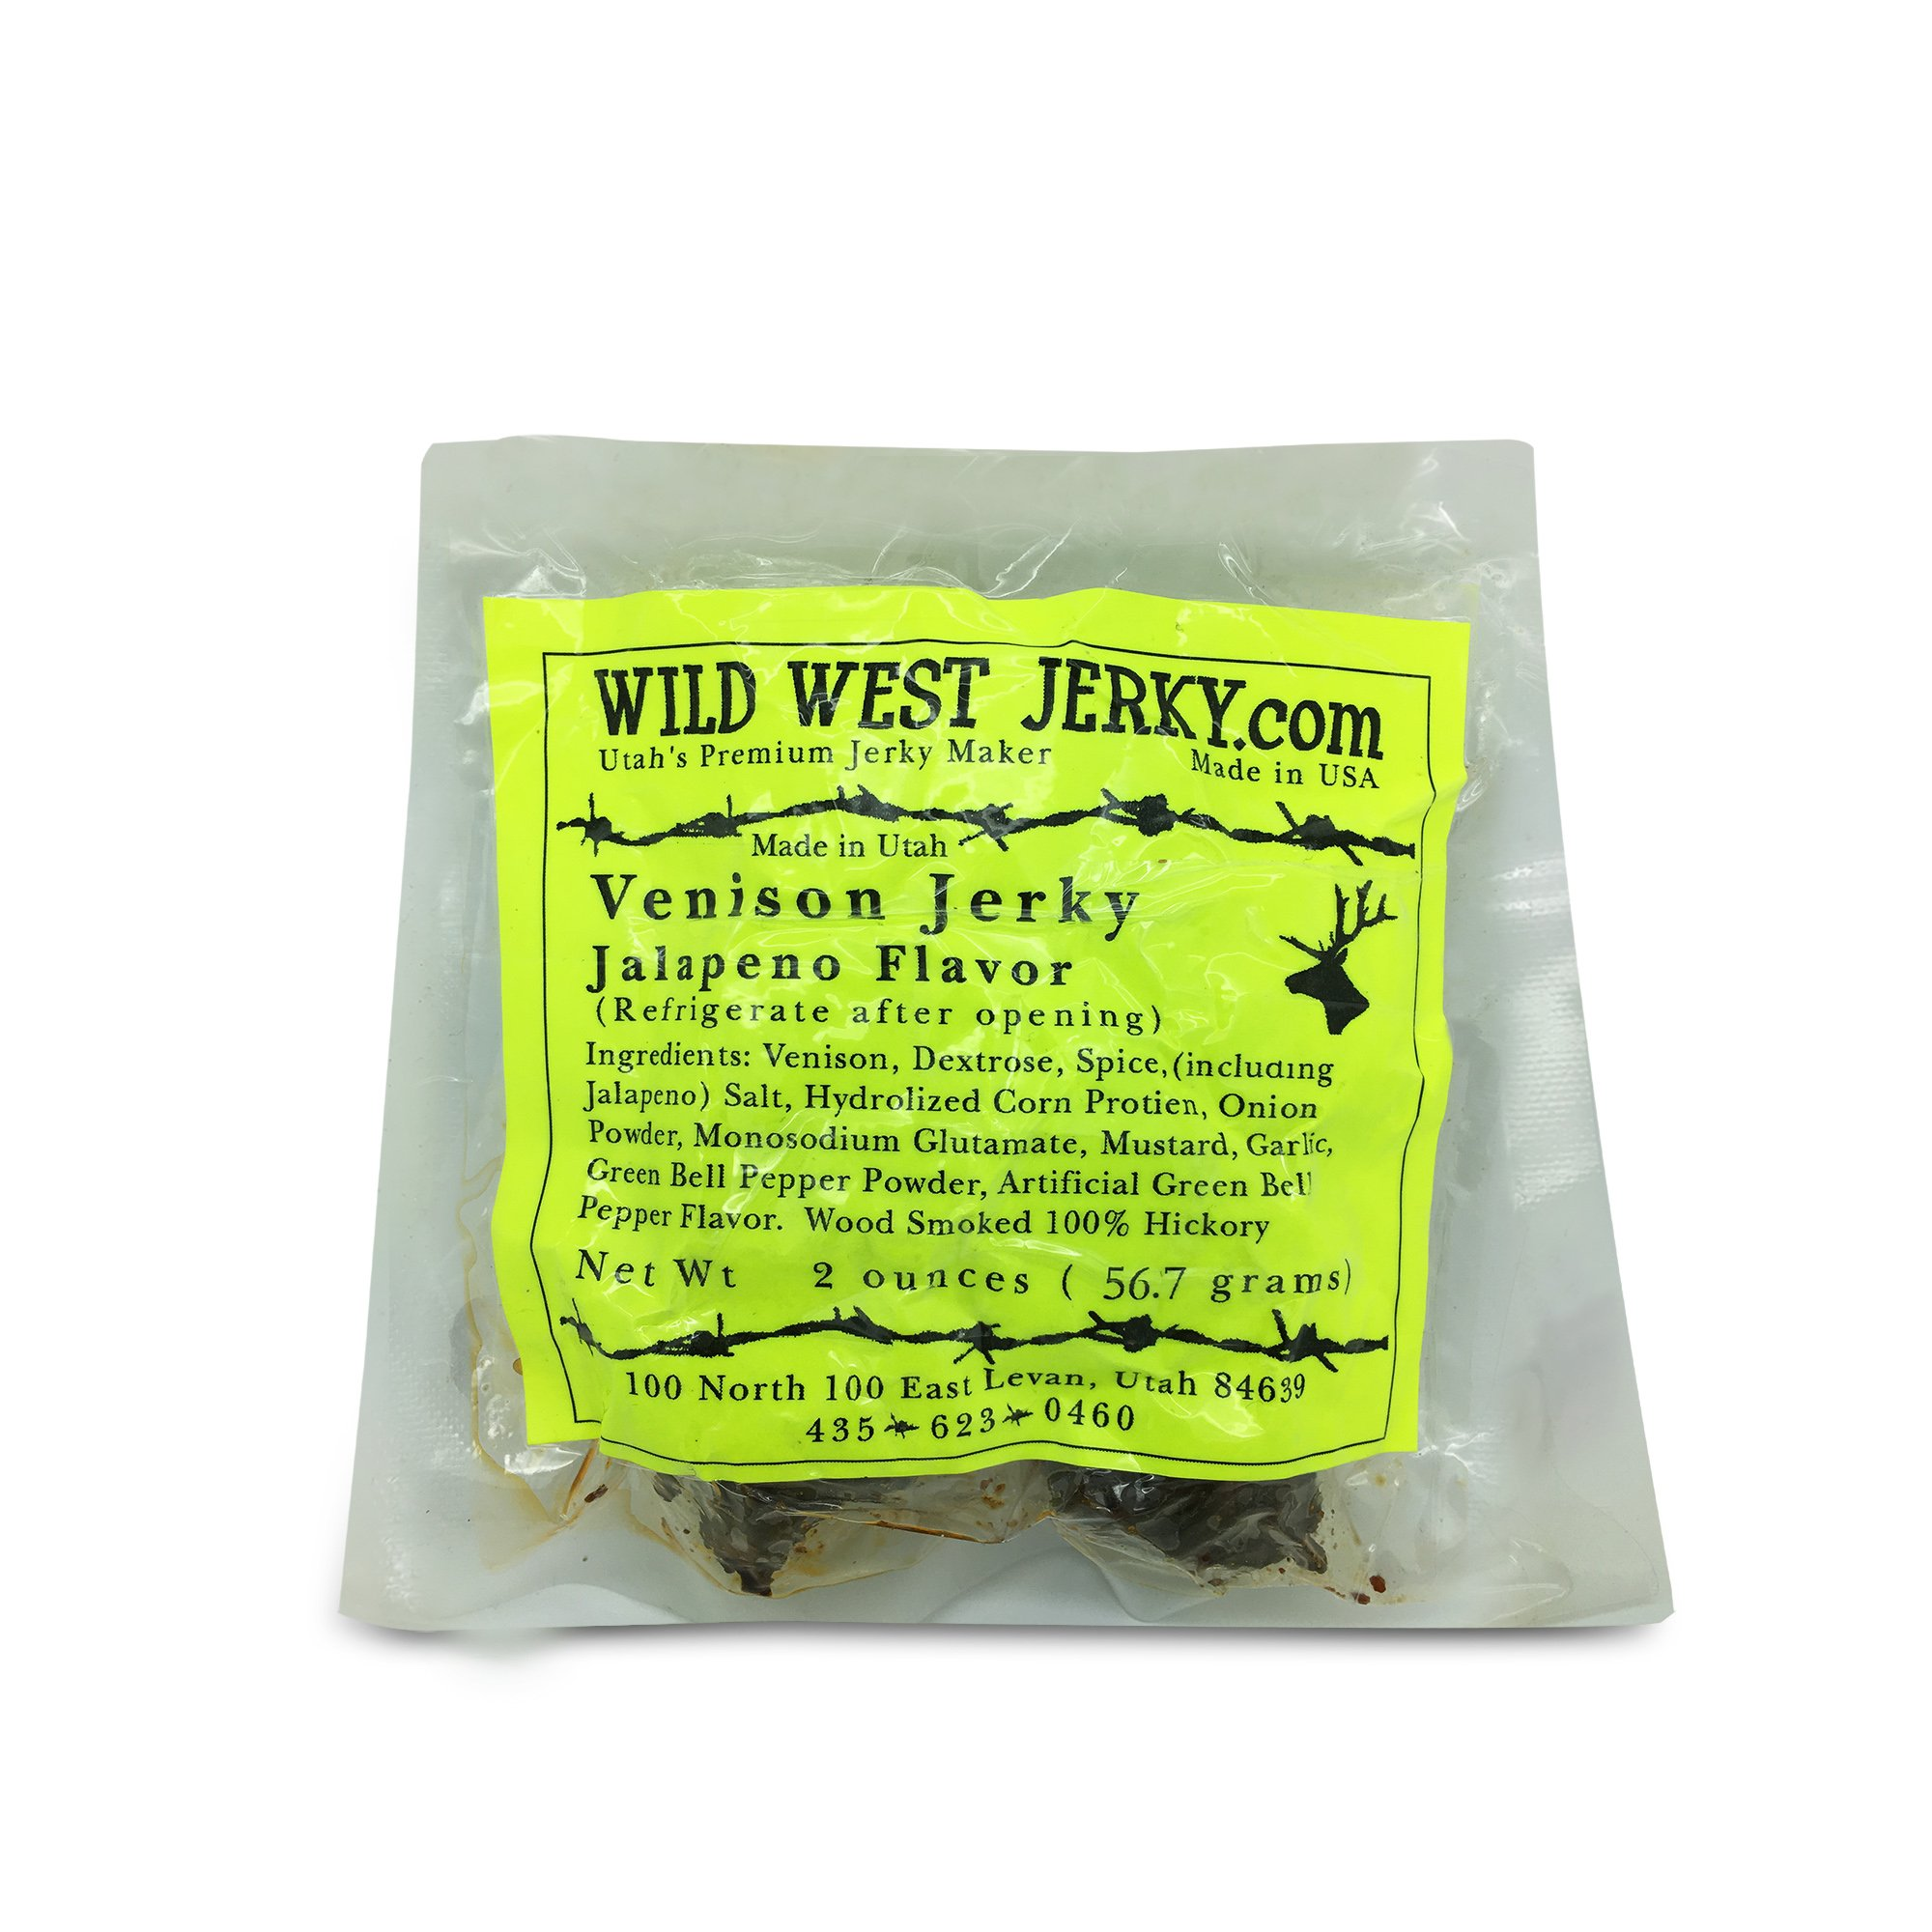 Wild West Jerky #1 Best Premium 100% Natural Grass Fed Hand Stripped 2 OZ. Thick Cut Delicious Tasty Bold Flavor Venison (Deer) Jerky from Utah USA - Wood Smoked with Hickory Wood (Jalapeno 1 Pack)